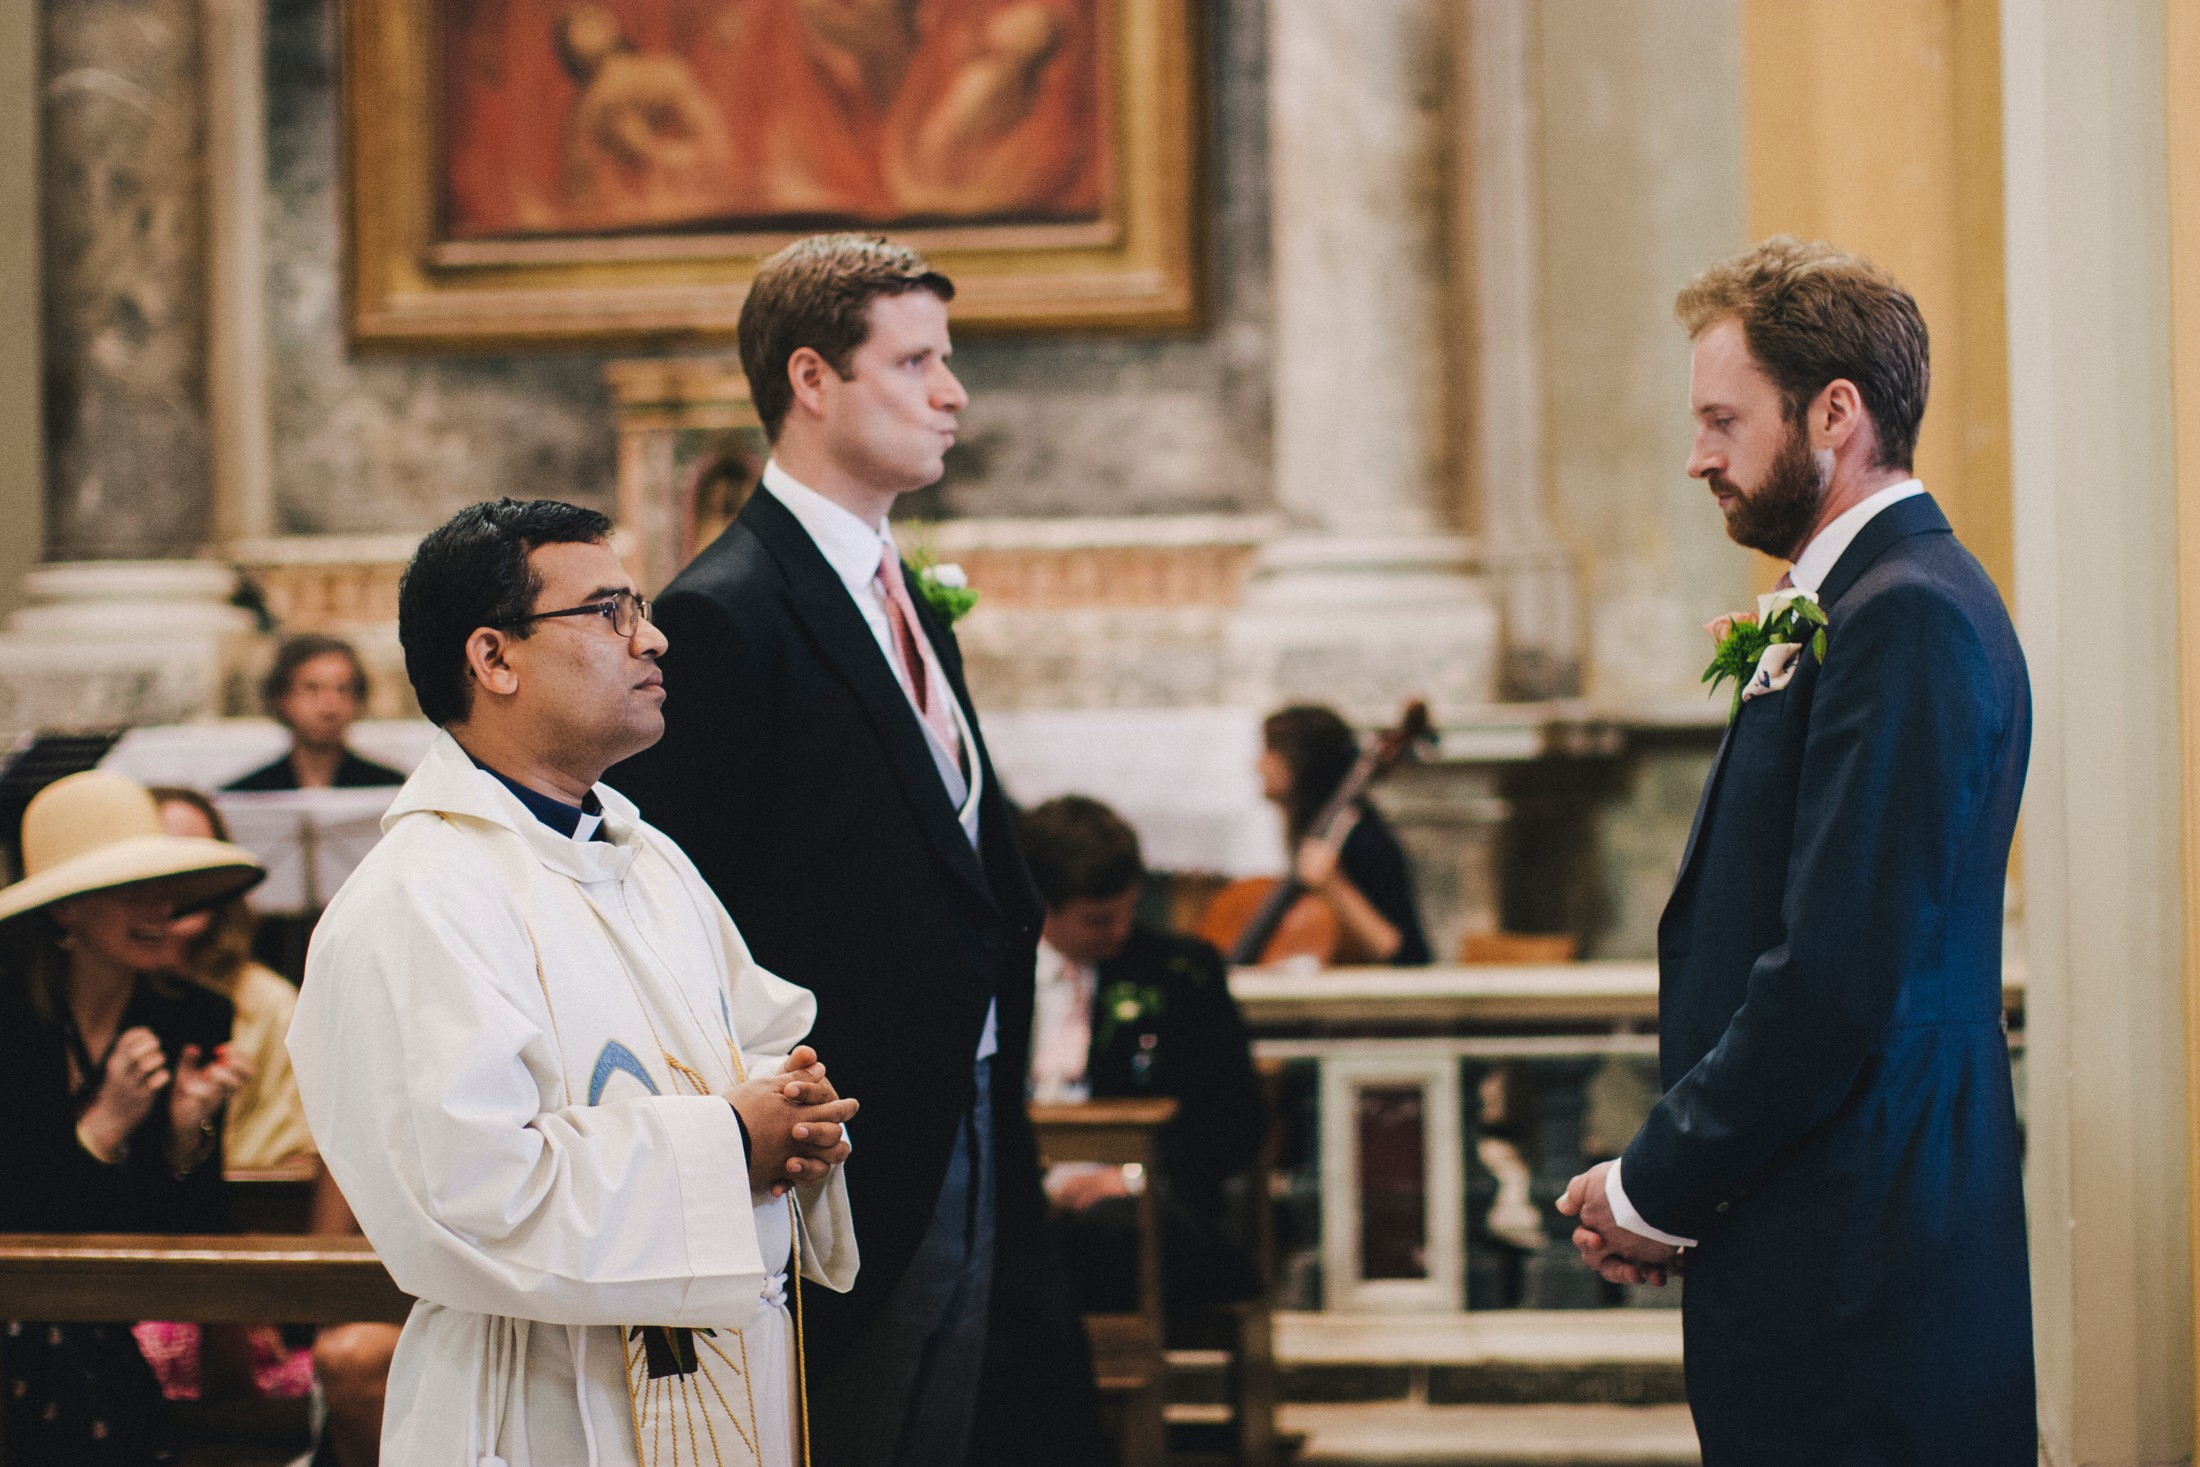 wedding in rome the groom with his best man and the priest inside the church